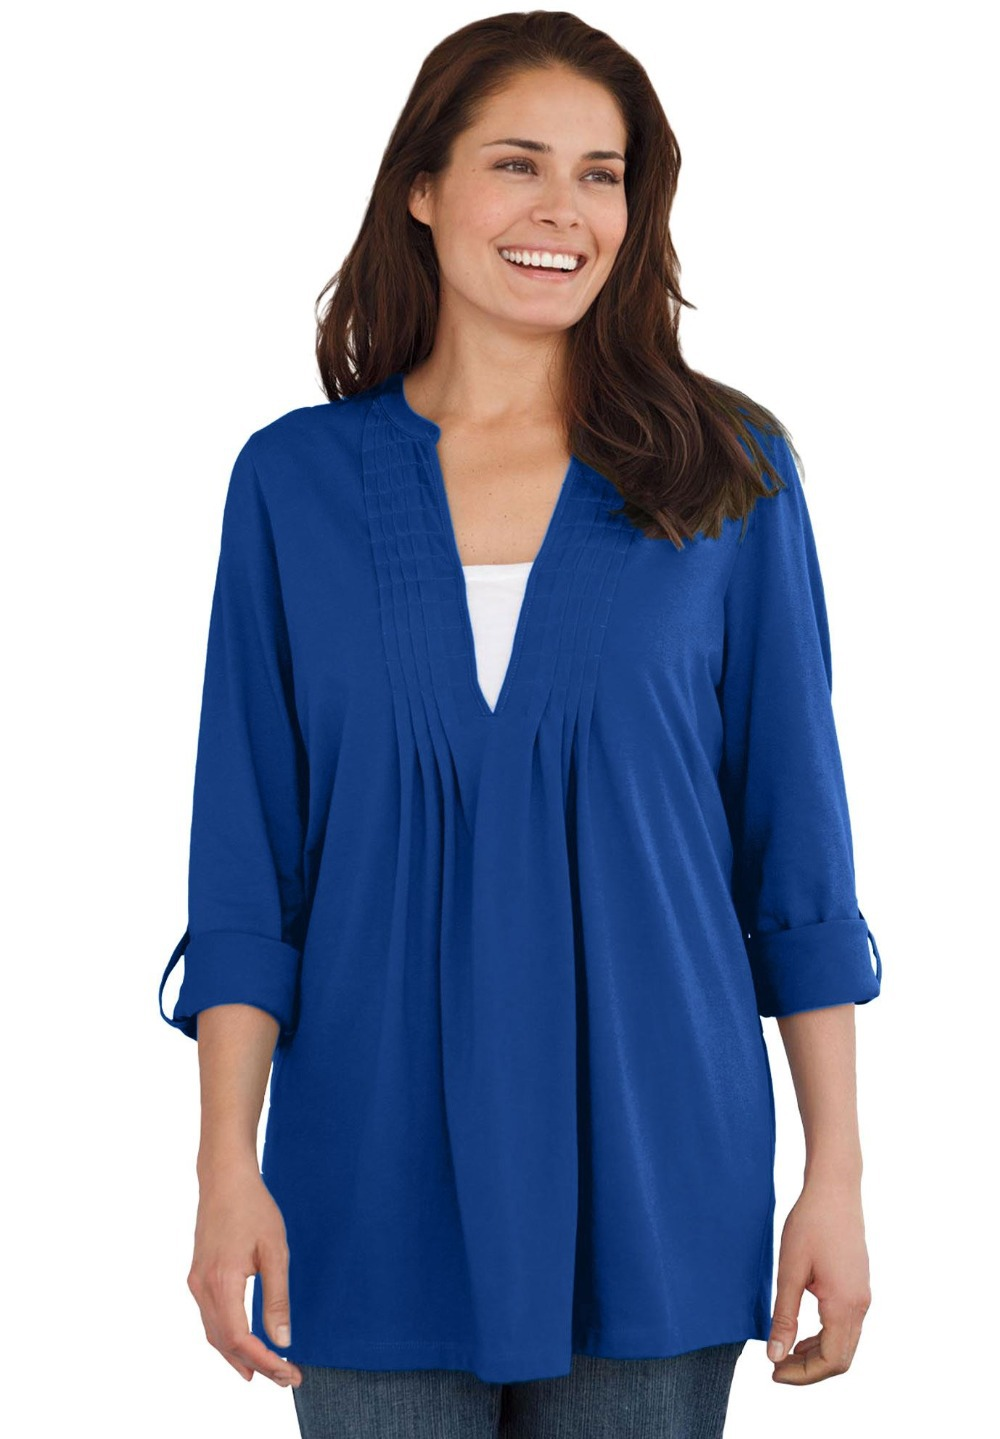 5Color L 10XL Large Size Women Box stitched Tunic Tee ...